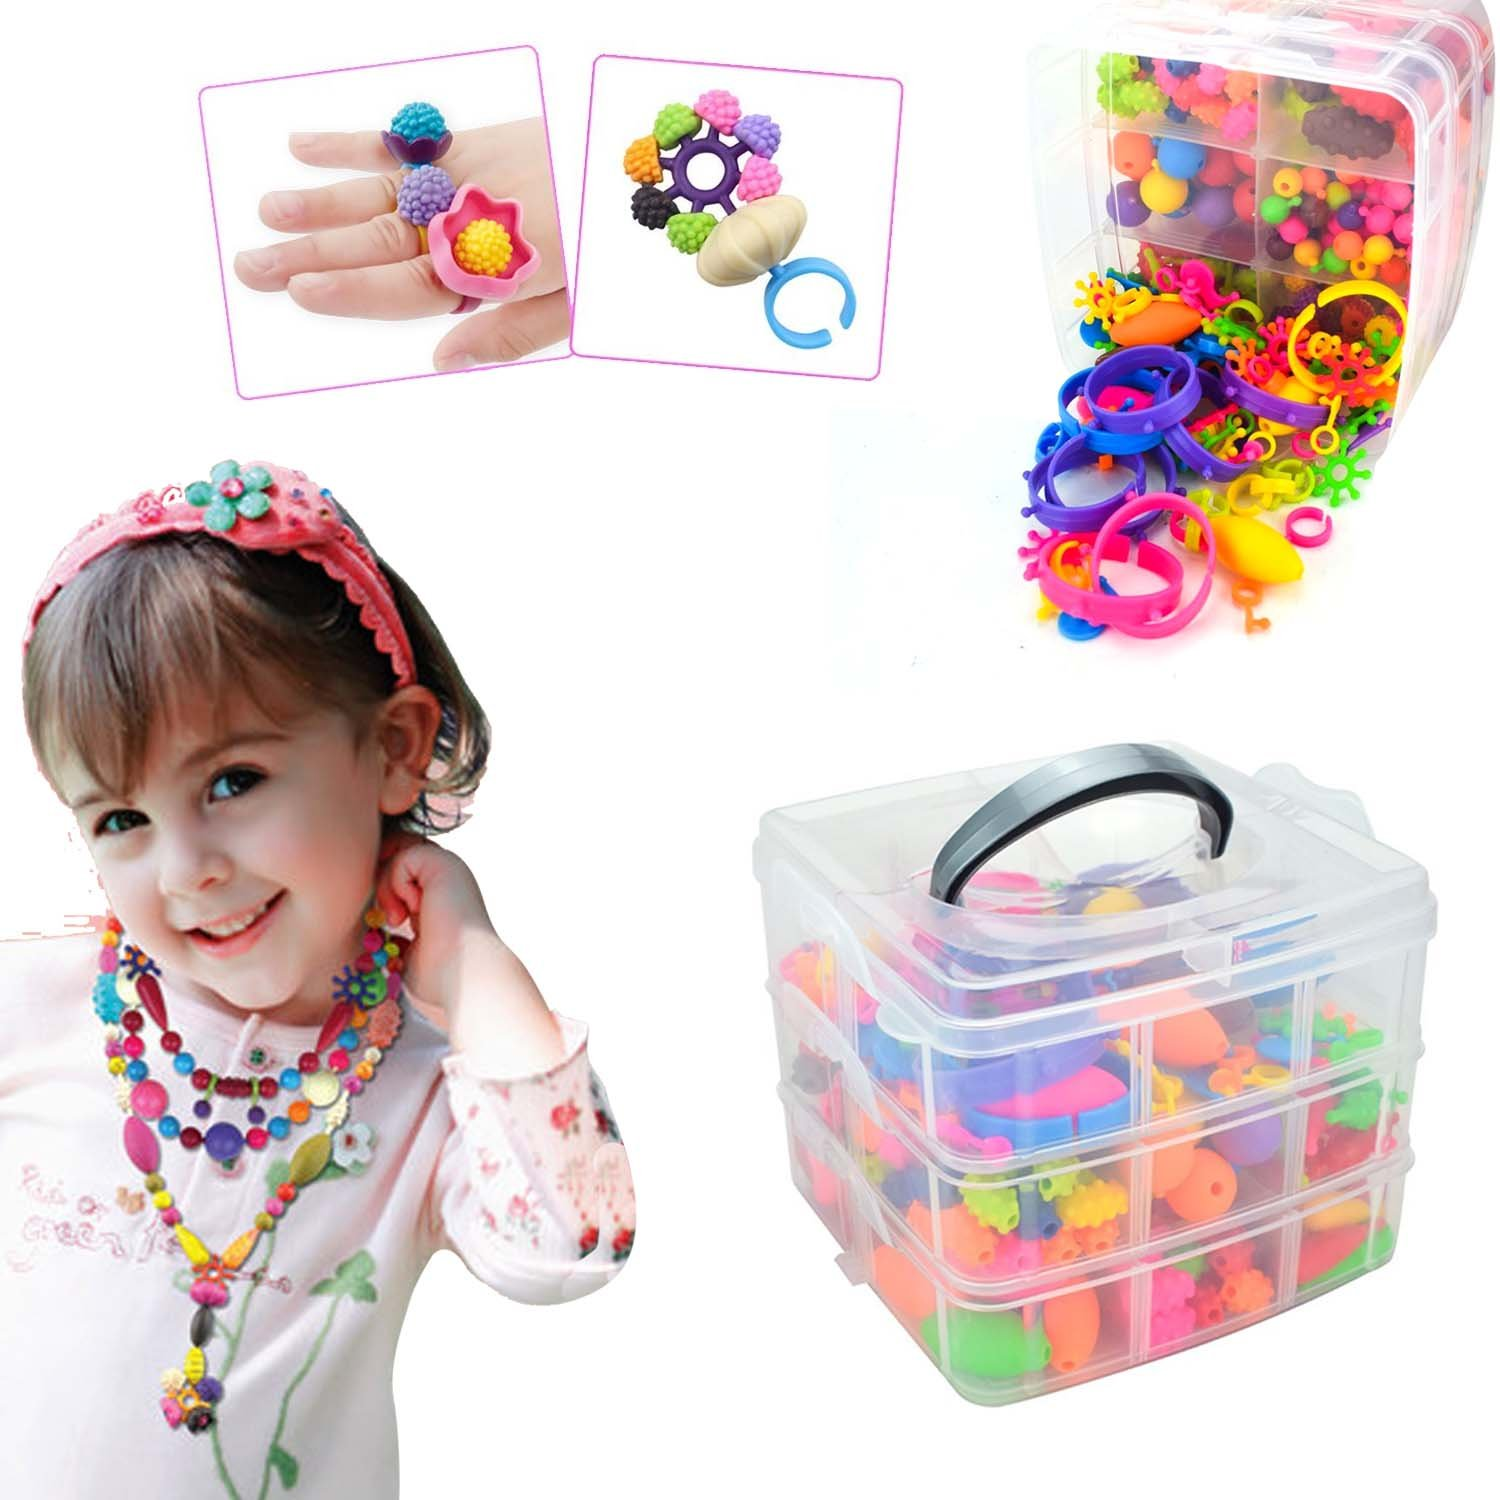 IAMGlobal 380 Pcs Pop Beads, Beads Snap, DIY Jewelry Making Kit, Fashion Kit, Party Favor Toys, Art Crafts Gifts, Educational Toys For Necklace and Bracelet and Rings For Kids Children Girls